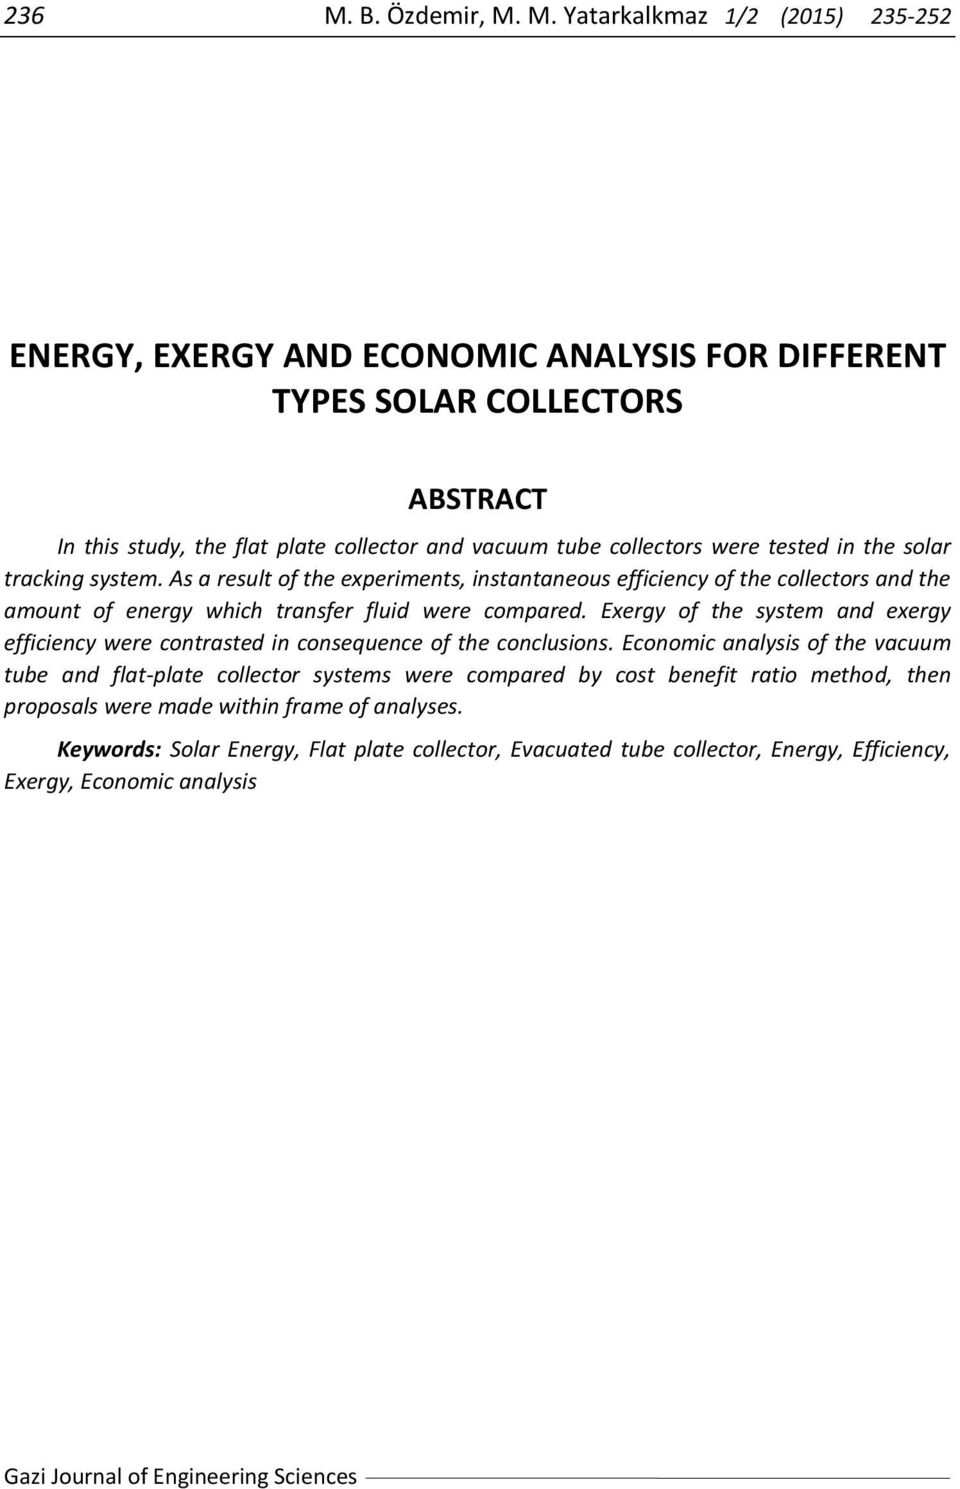 M. Yatarkalkmaz 1/2 (2015) 235-252 ENERGY, EXERGY AND ECONOMIC ANALYSIS FOR DIFFERENT TYPES SOLAR COLLECTORS ABSTRACT In this study, the flat plate collector and vacuum tube collectors were tested in